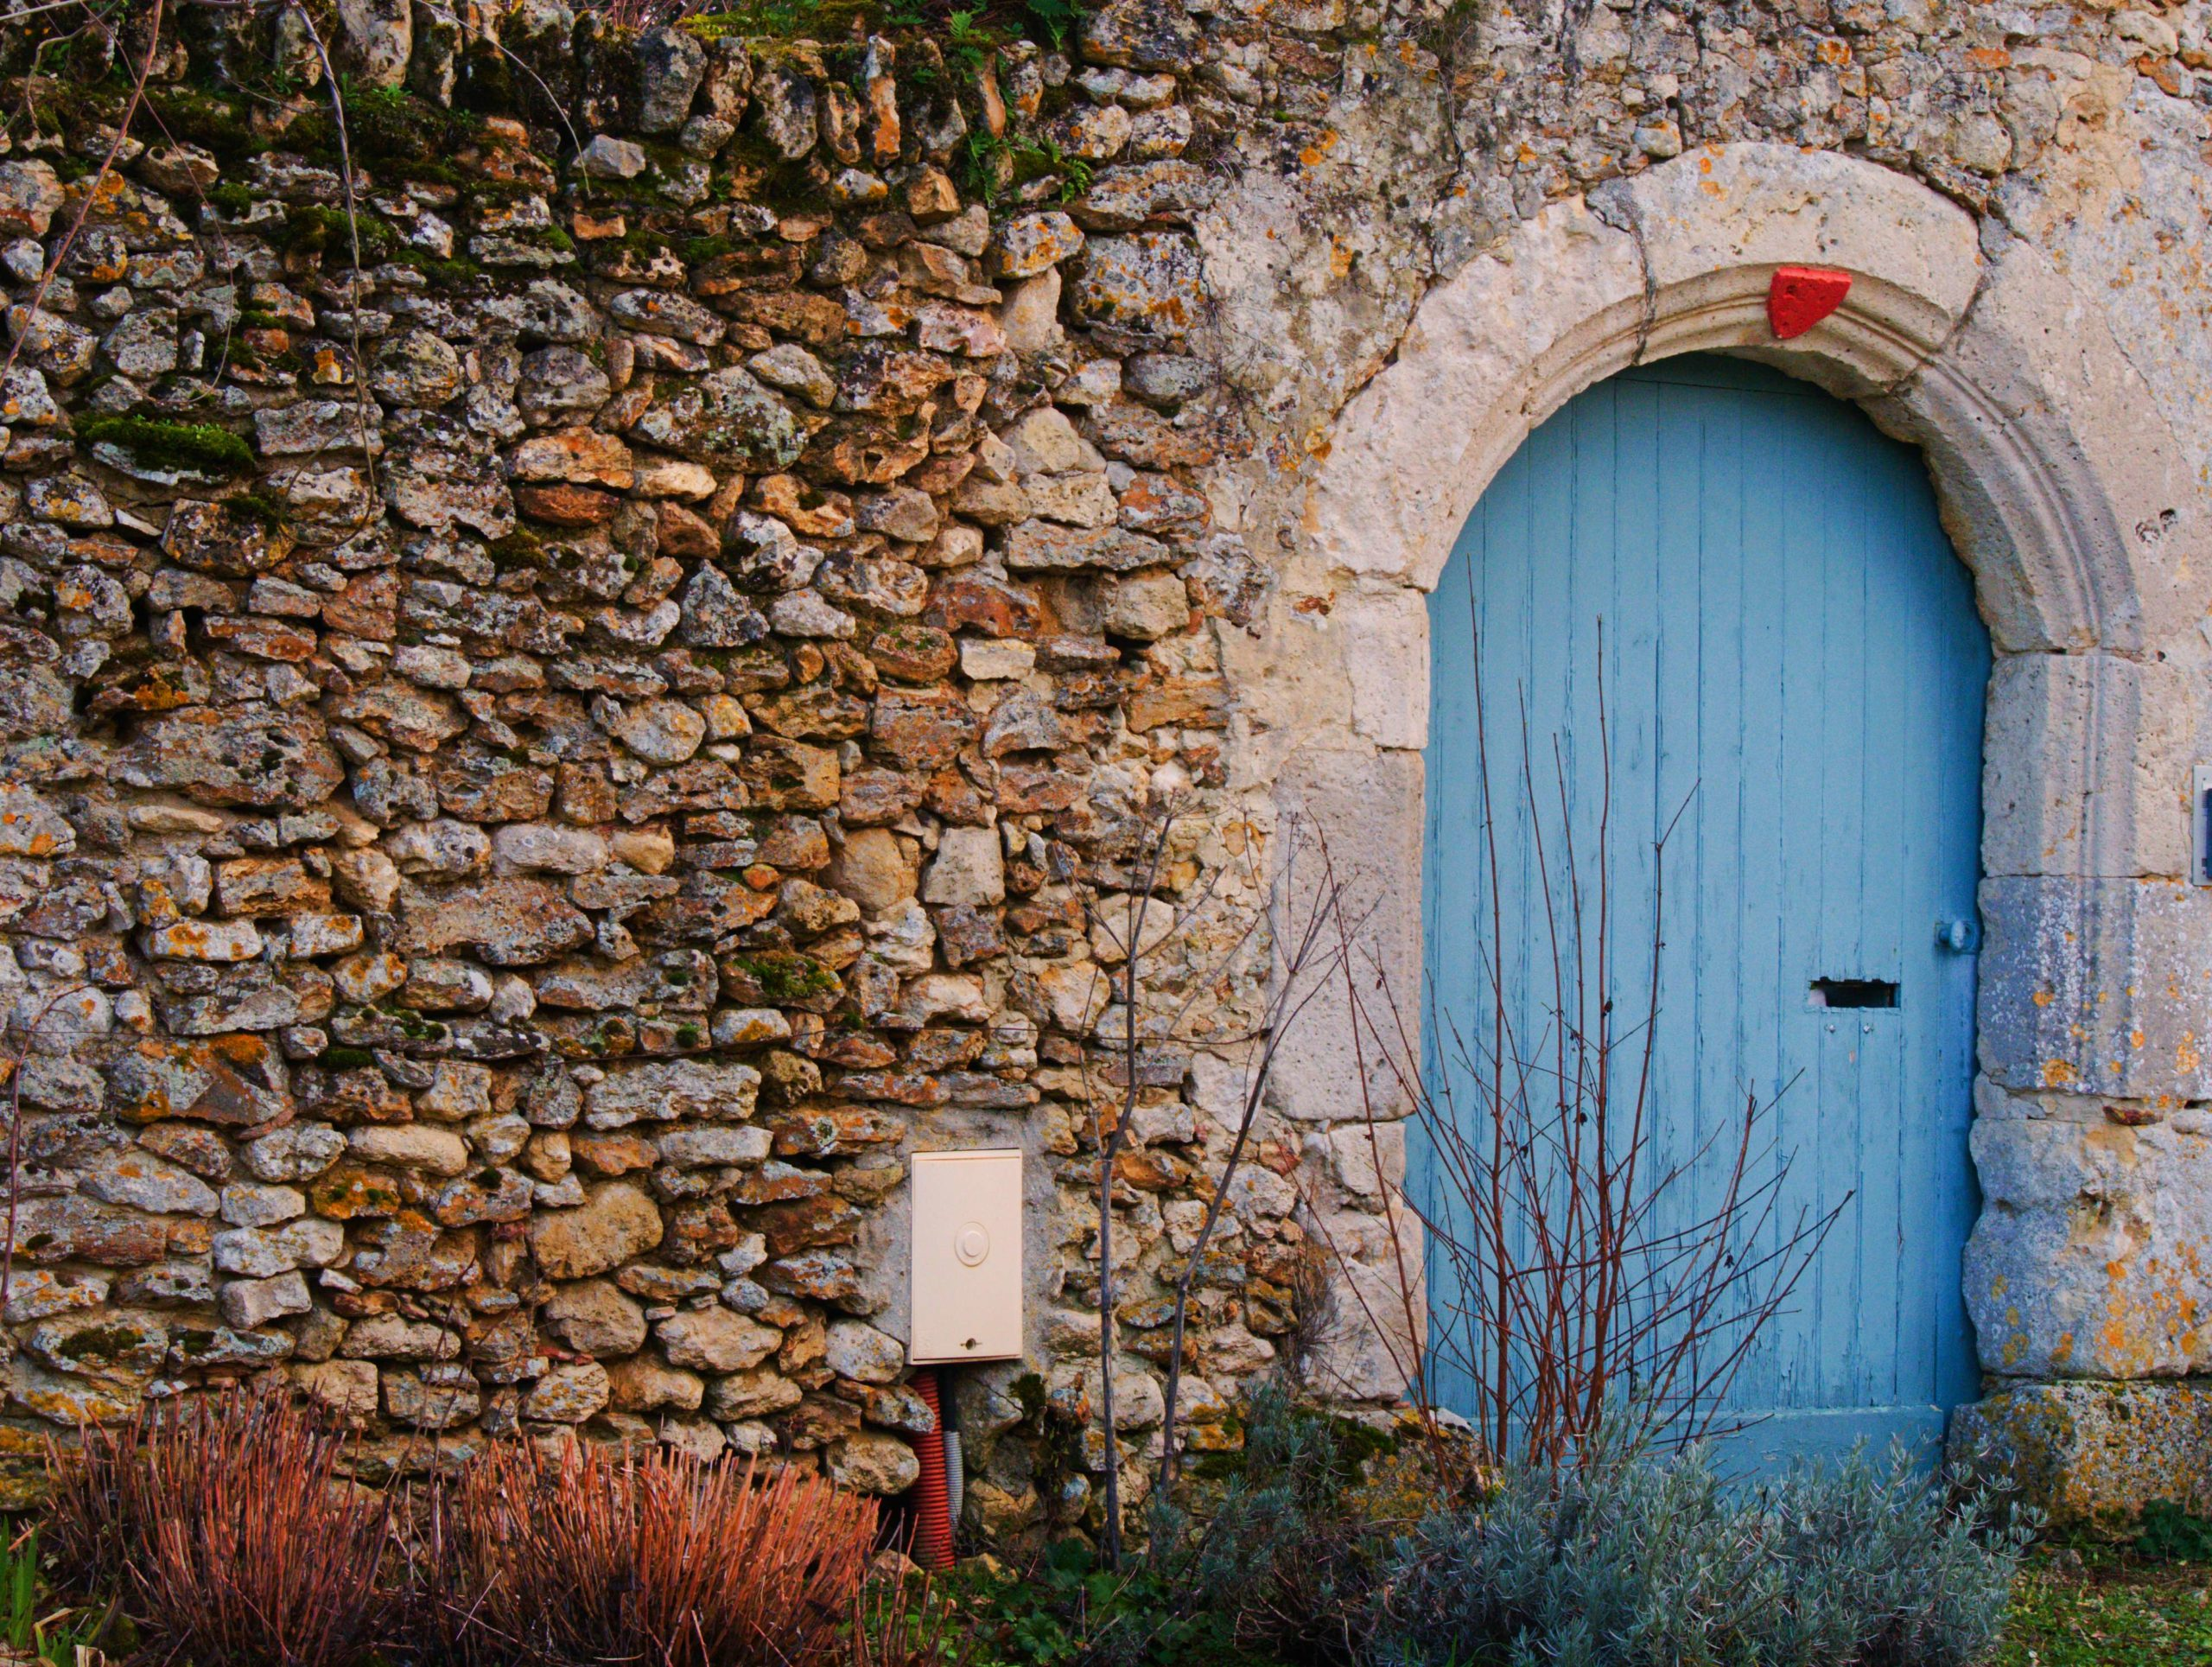 Addicted to detours #2: behind the blue door